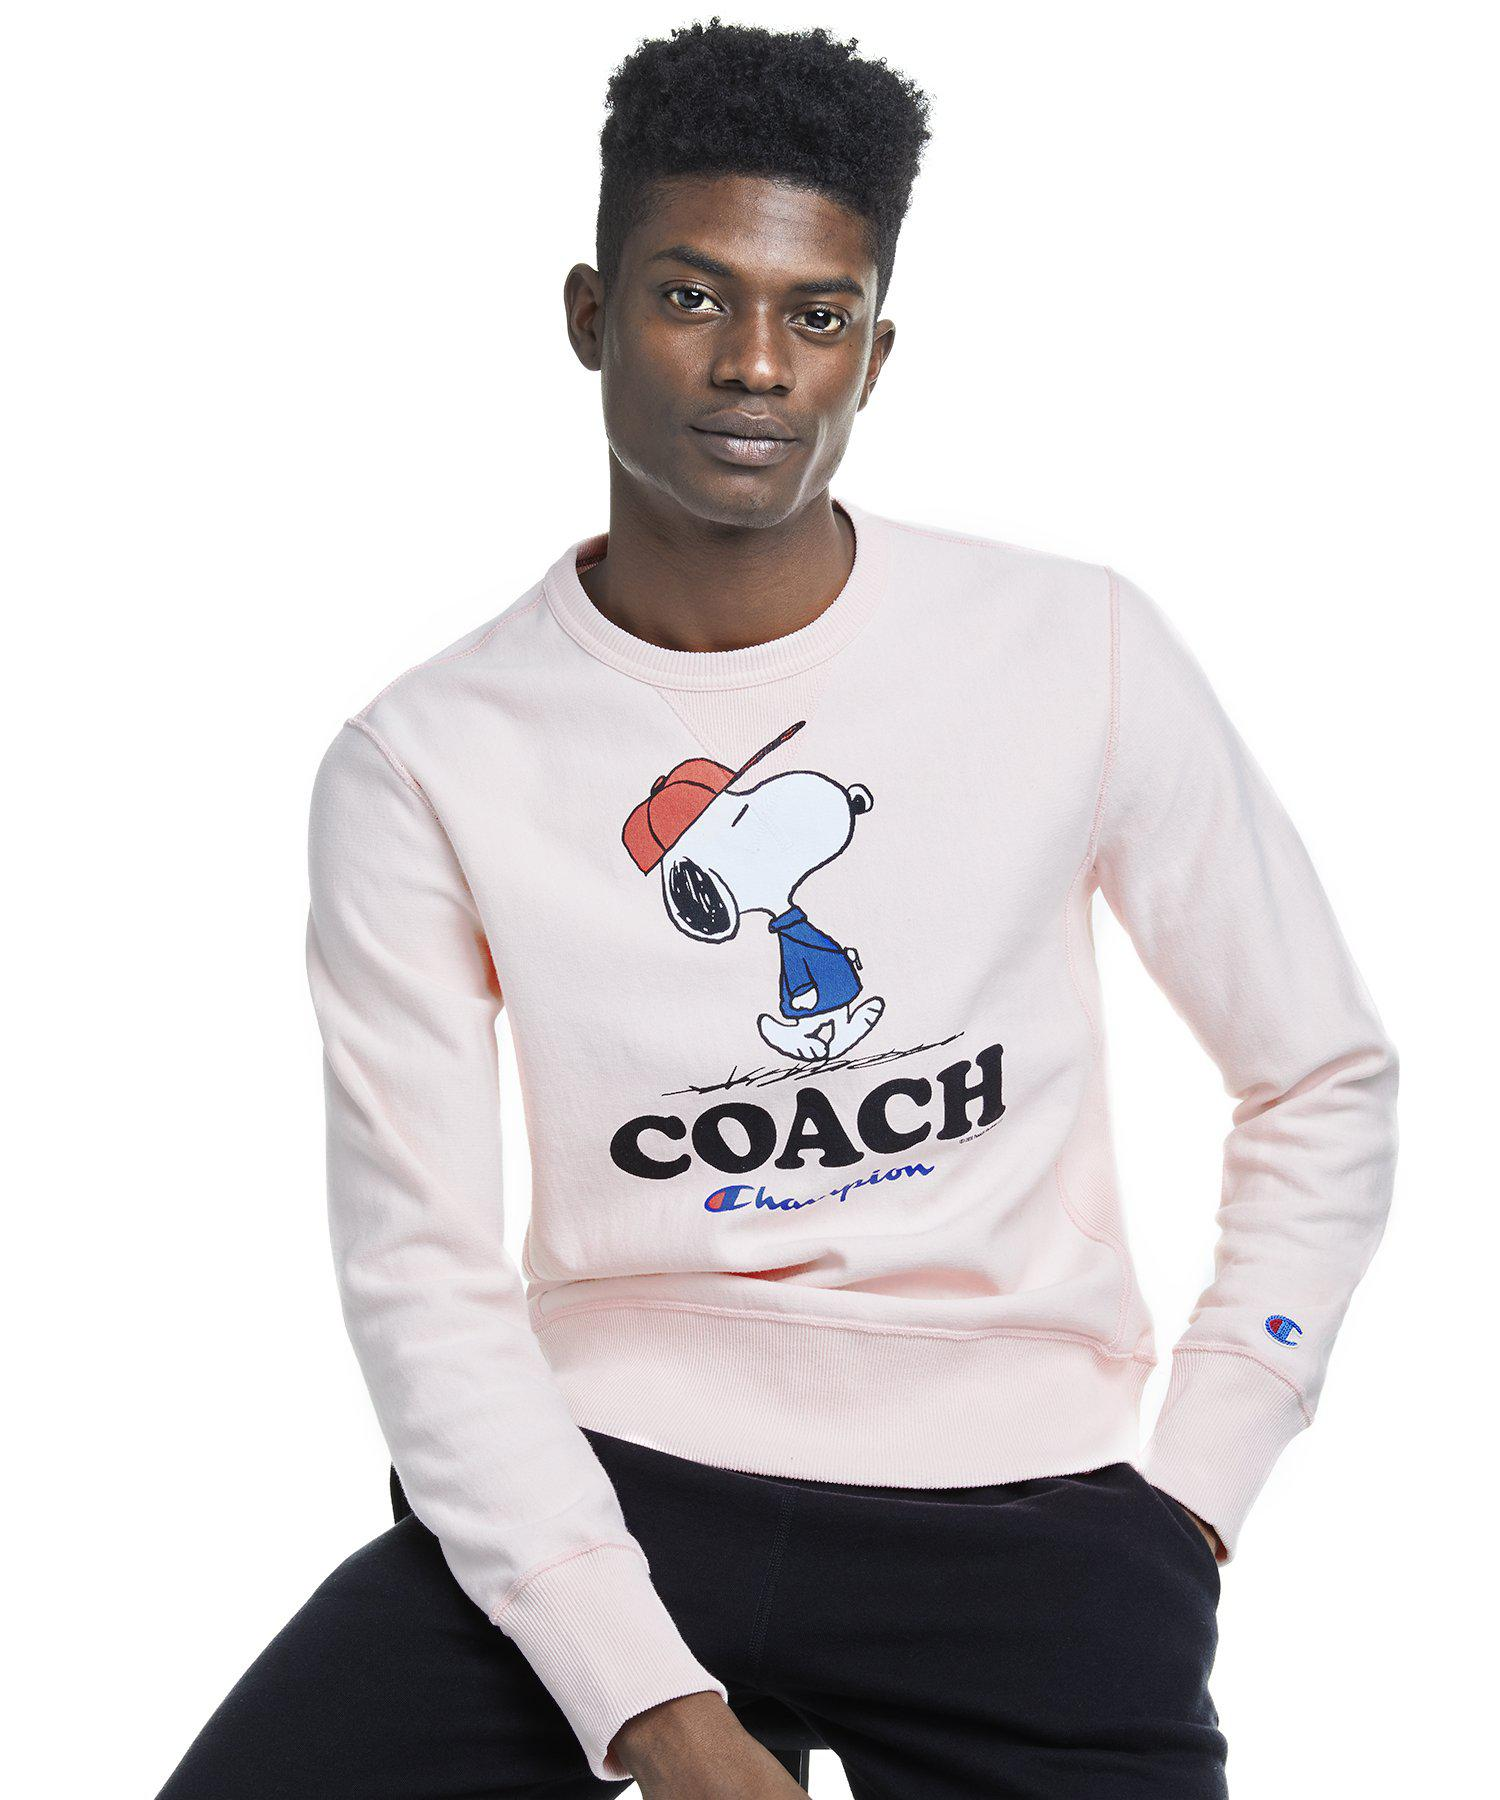 dc2a4cbae1 Lyst - Todd Snyder Champion X Peanuts Snoopy Coach Sweatshirt In ...